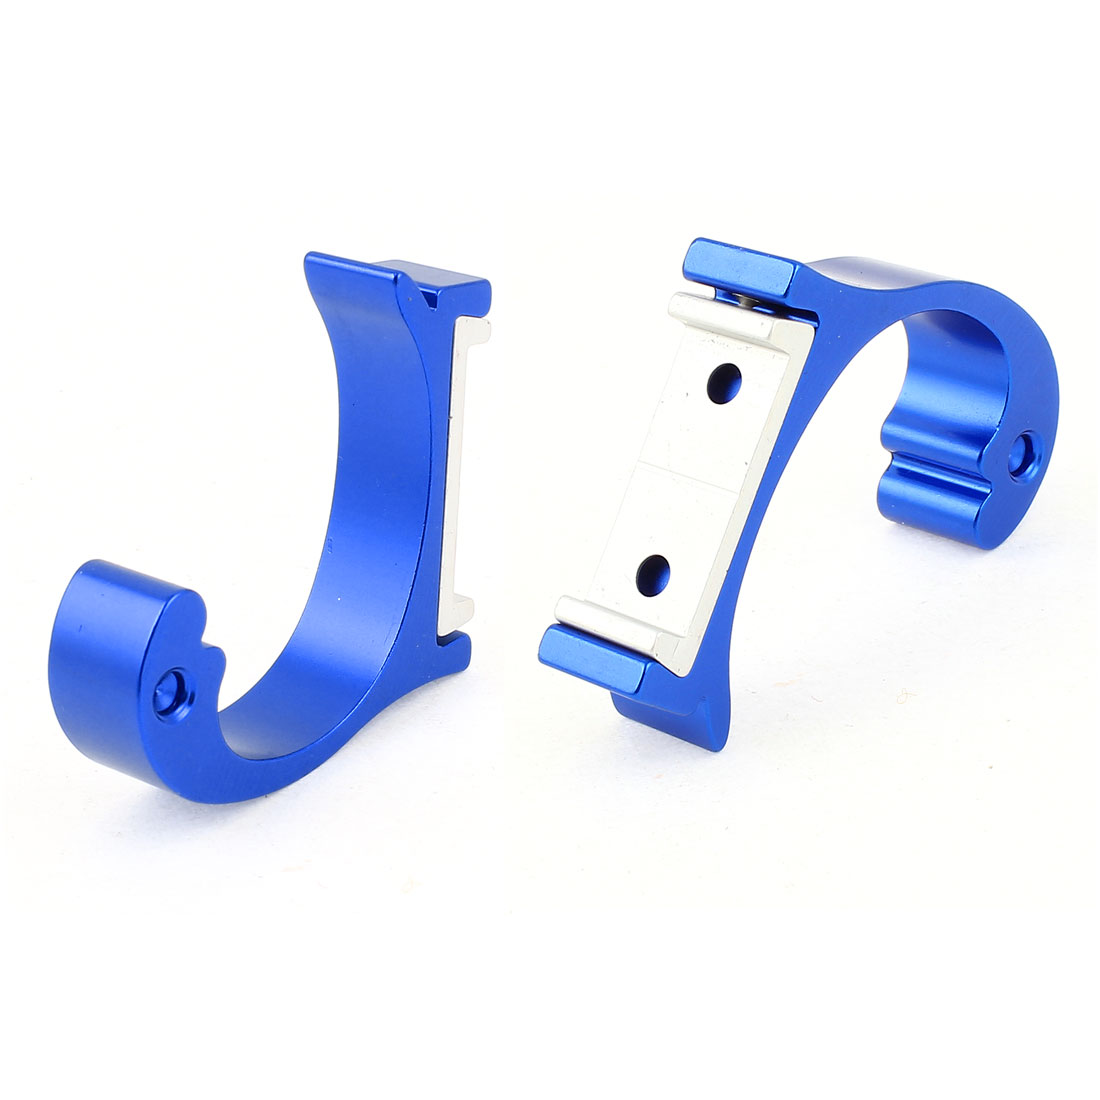 2 Pieces Aluminum Wall Mounting Bathroom Towel Holders Robe Hooks Hanger Blue 2""